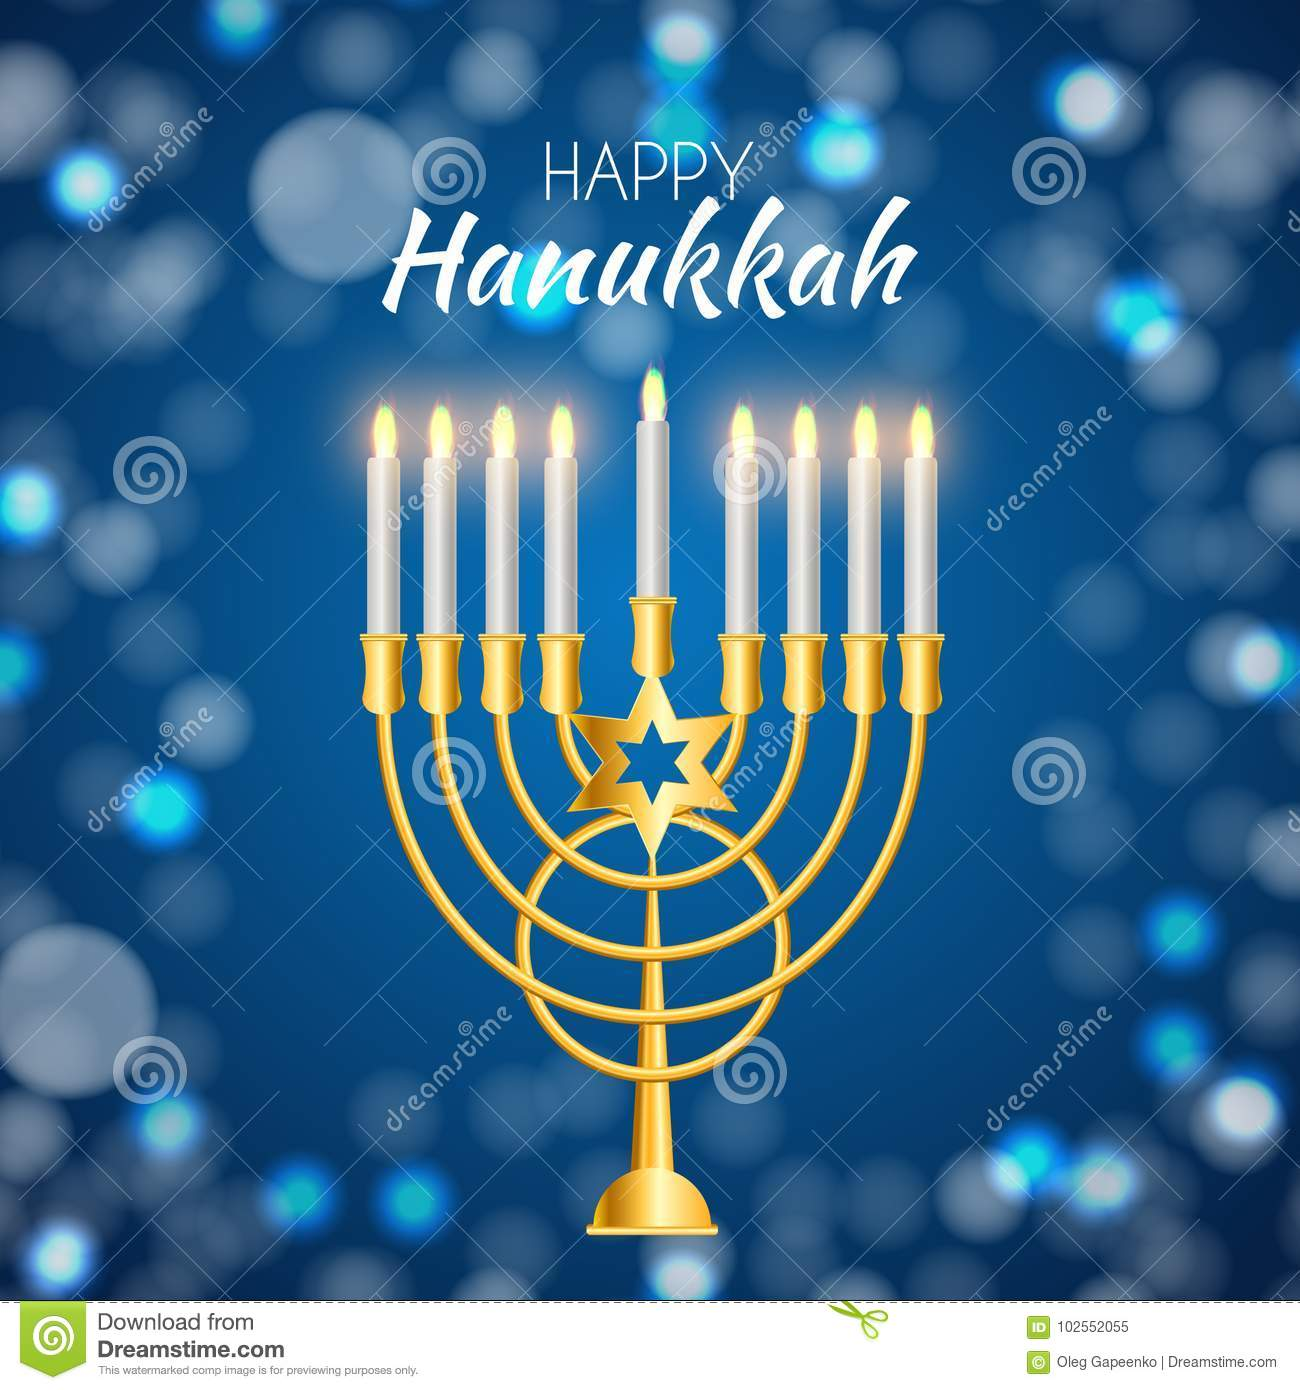 Happy Hanukkah, Jewish Holiday Background. Vector Illustration ...